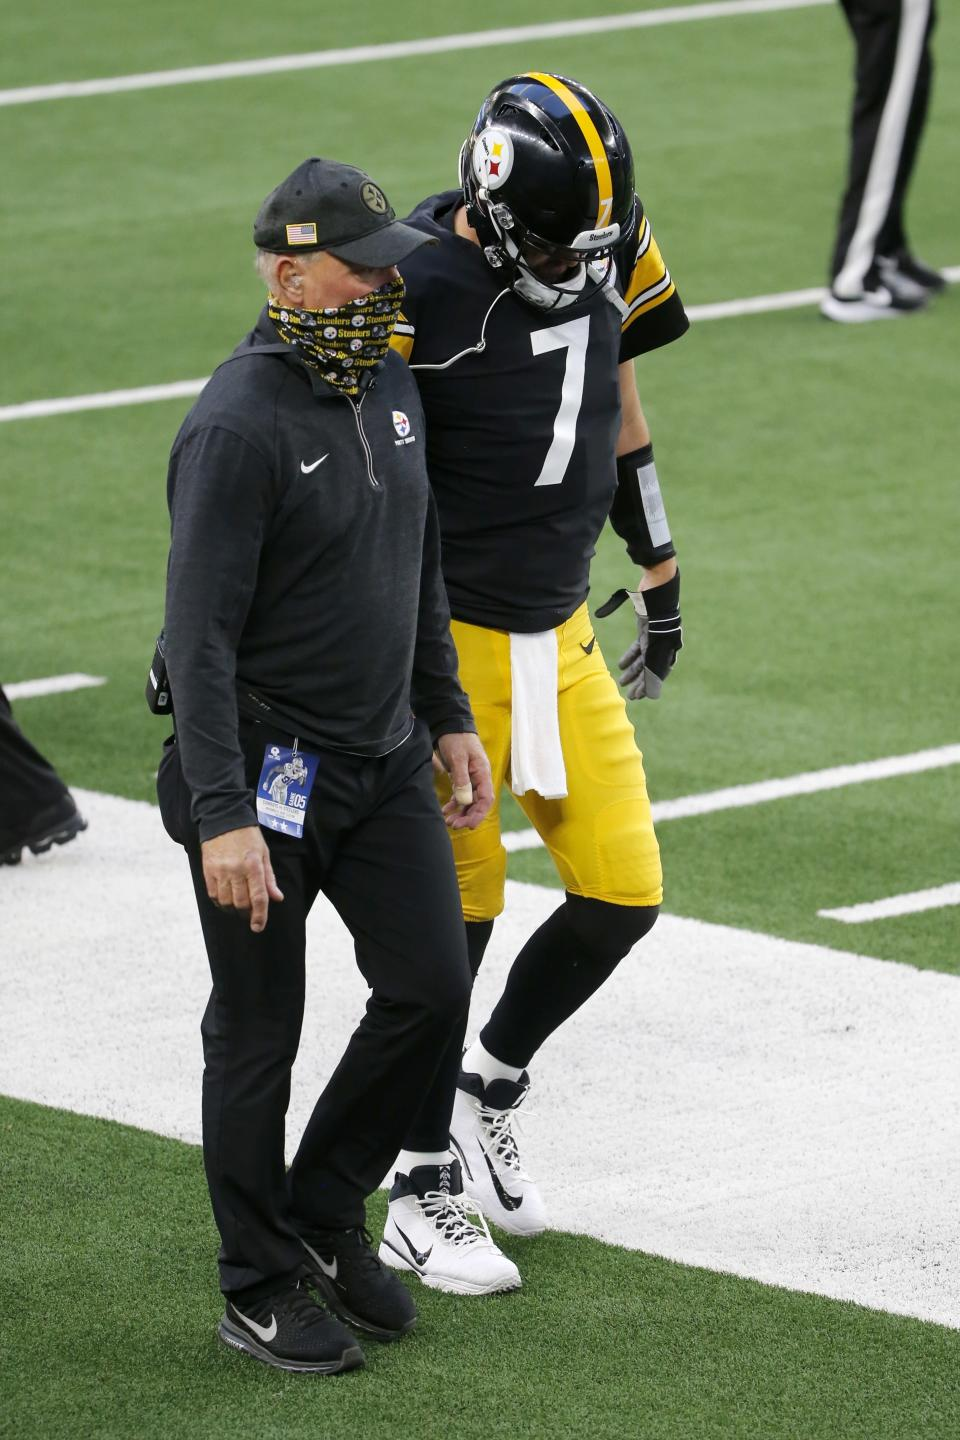 A member of the staff escorts Pittsburgh Steelers quarterback Ben Roethlisberger (7) to the locker room before the end of the first half of an NFL football game against the Dallas Cowboys in Arlington, Texas, Sunday, Nov. 8, 2020. (AP Photo/Michael Ainsworth)